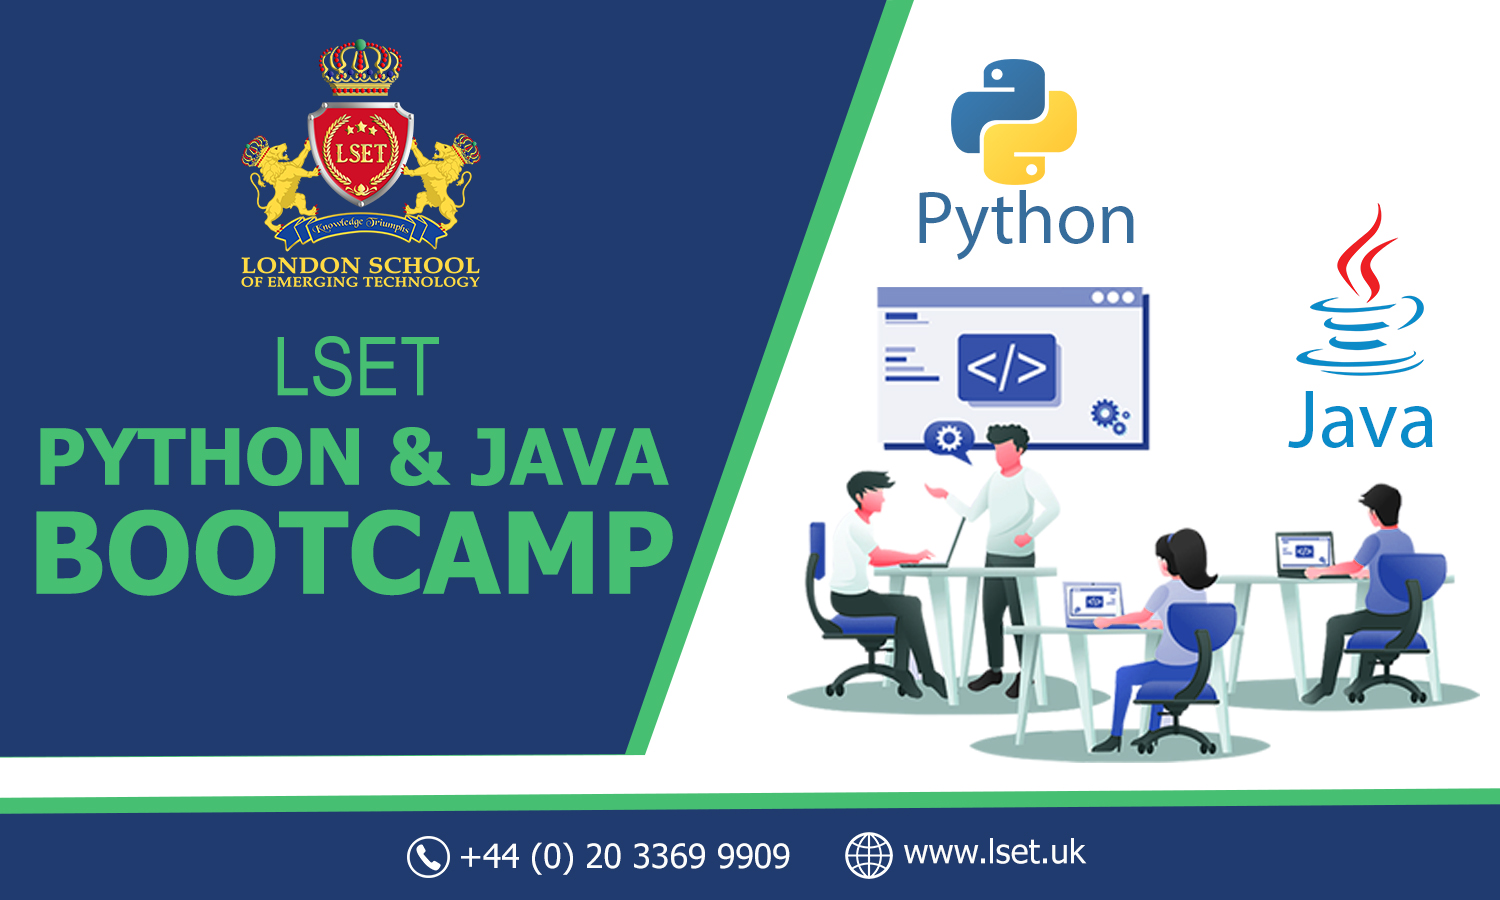 LSET is Coming up with Java and Python Bootcamps